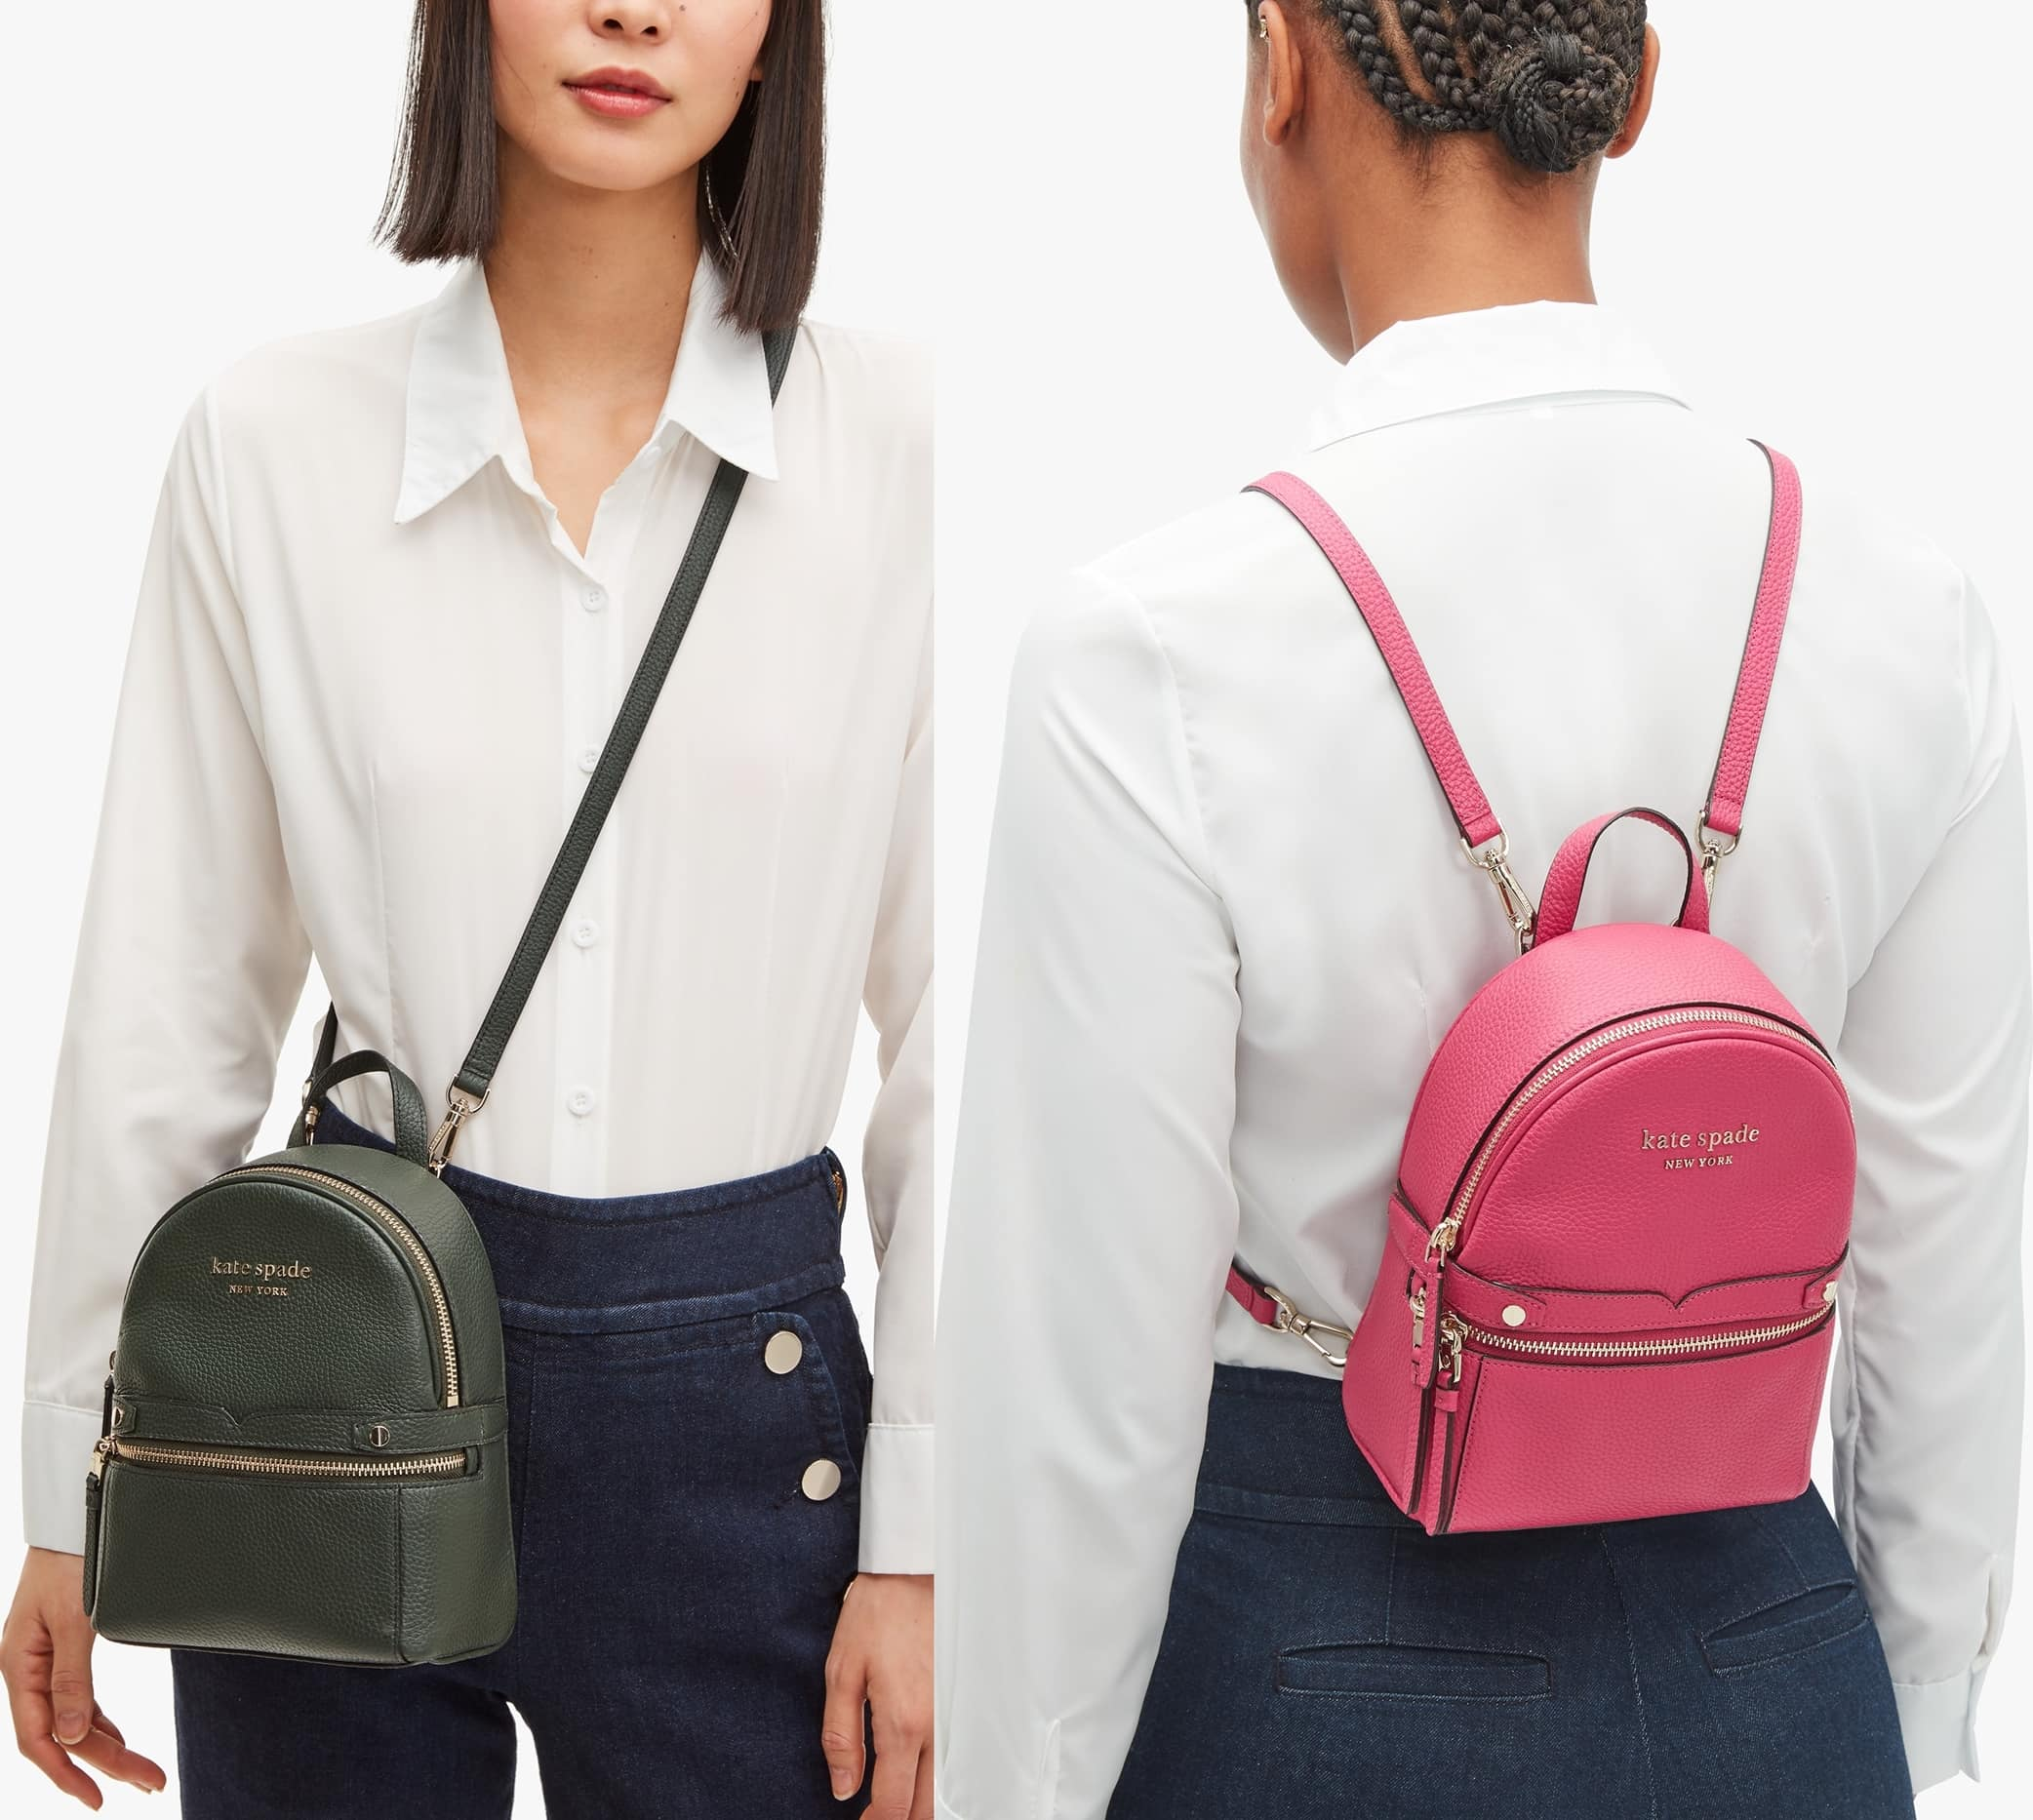 This mini convertible backpack can be transformed into a crossbody or shoulder bag